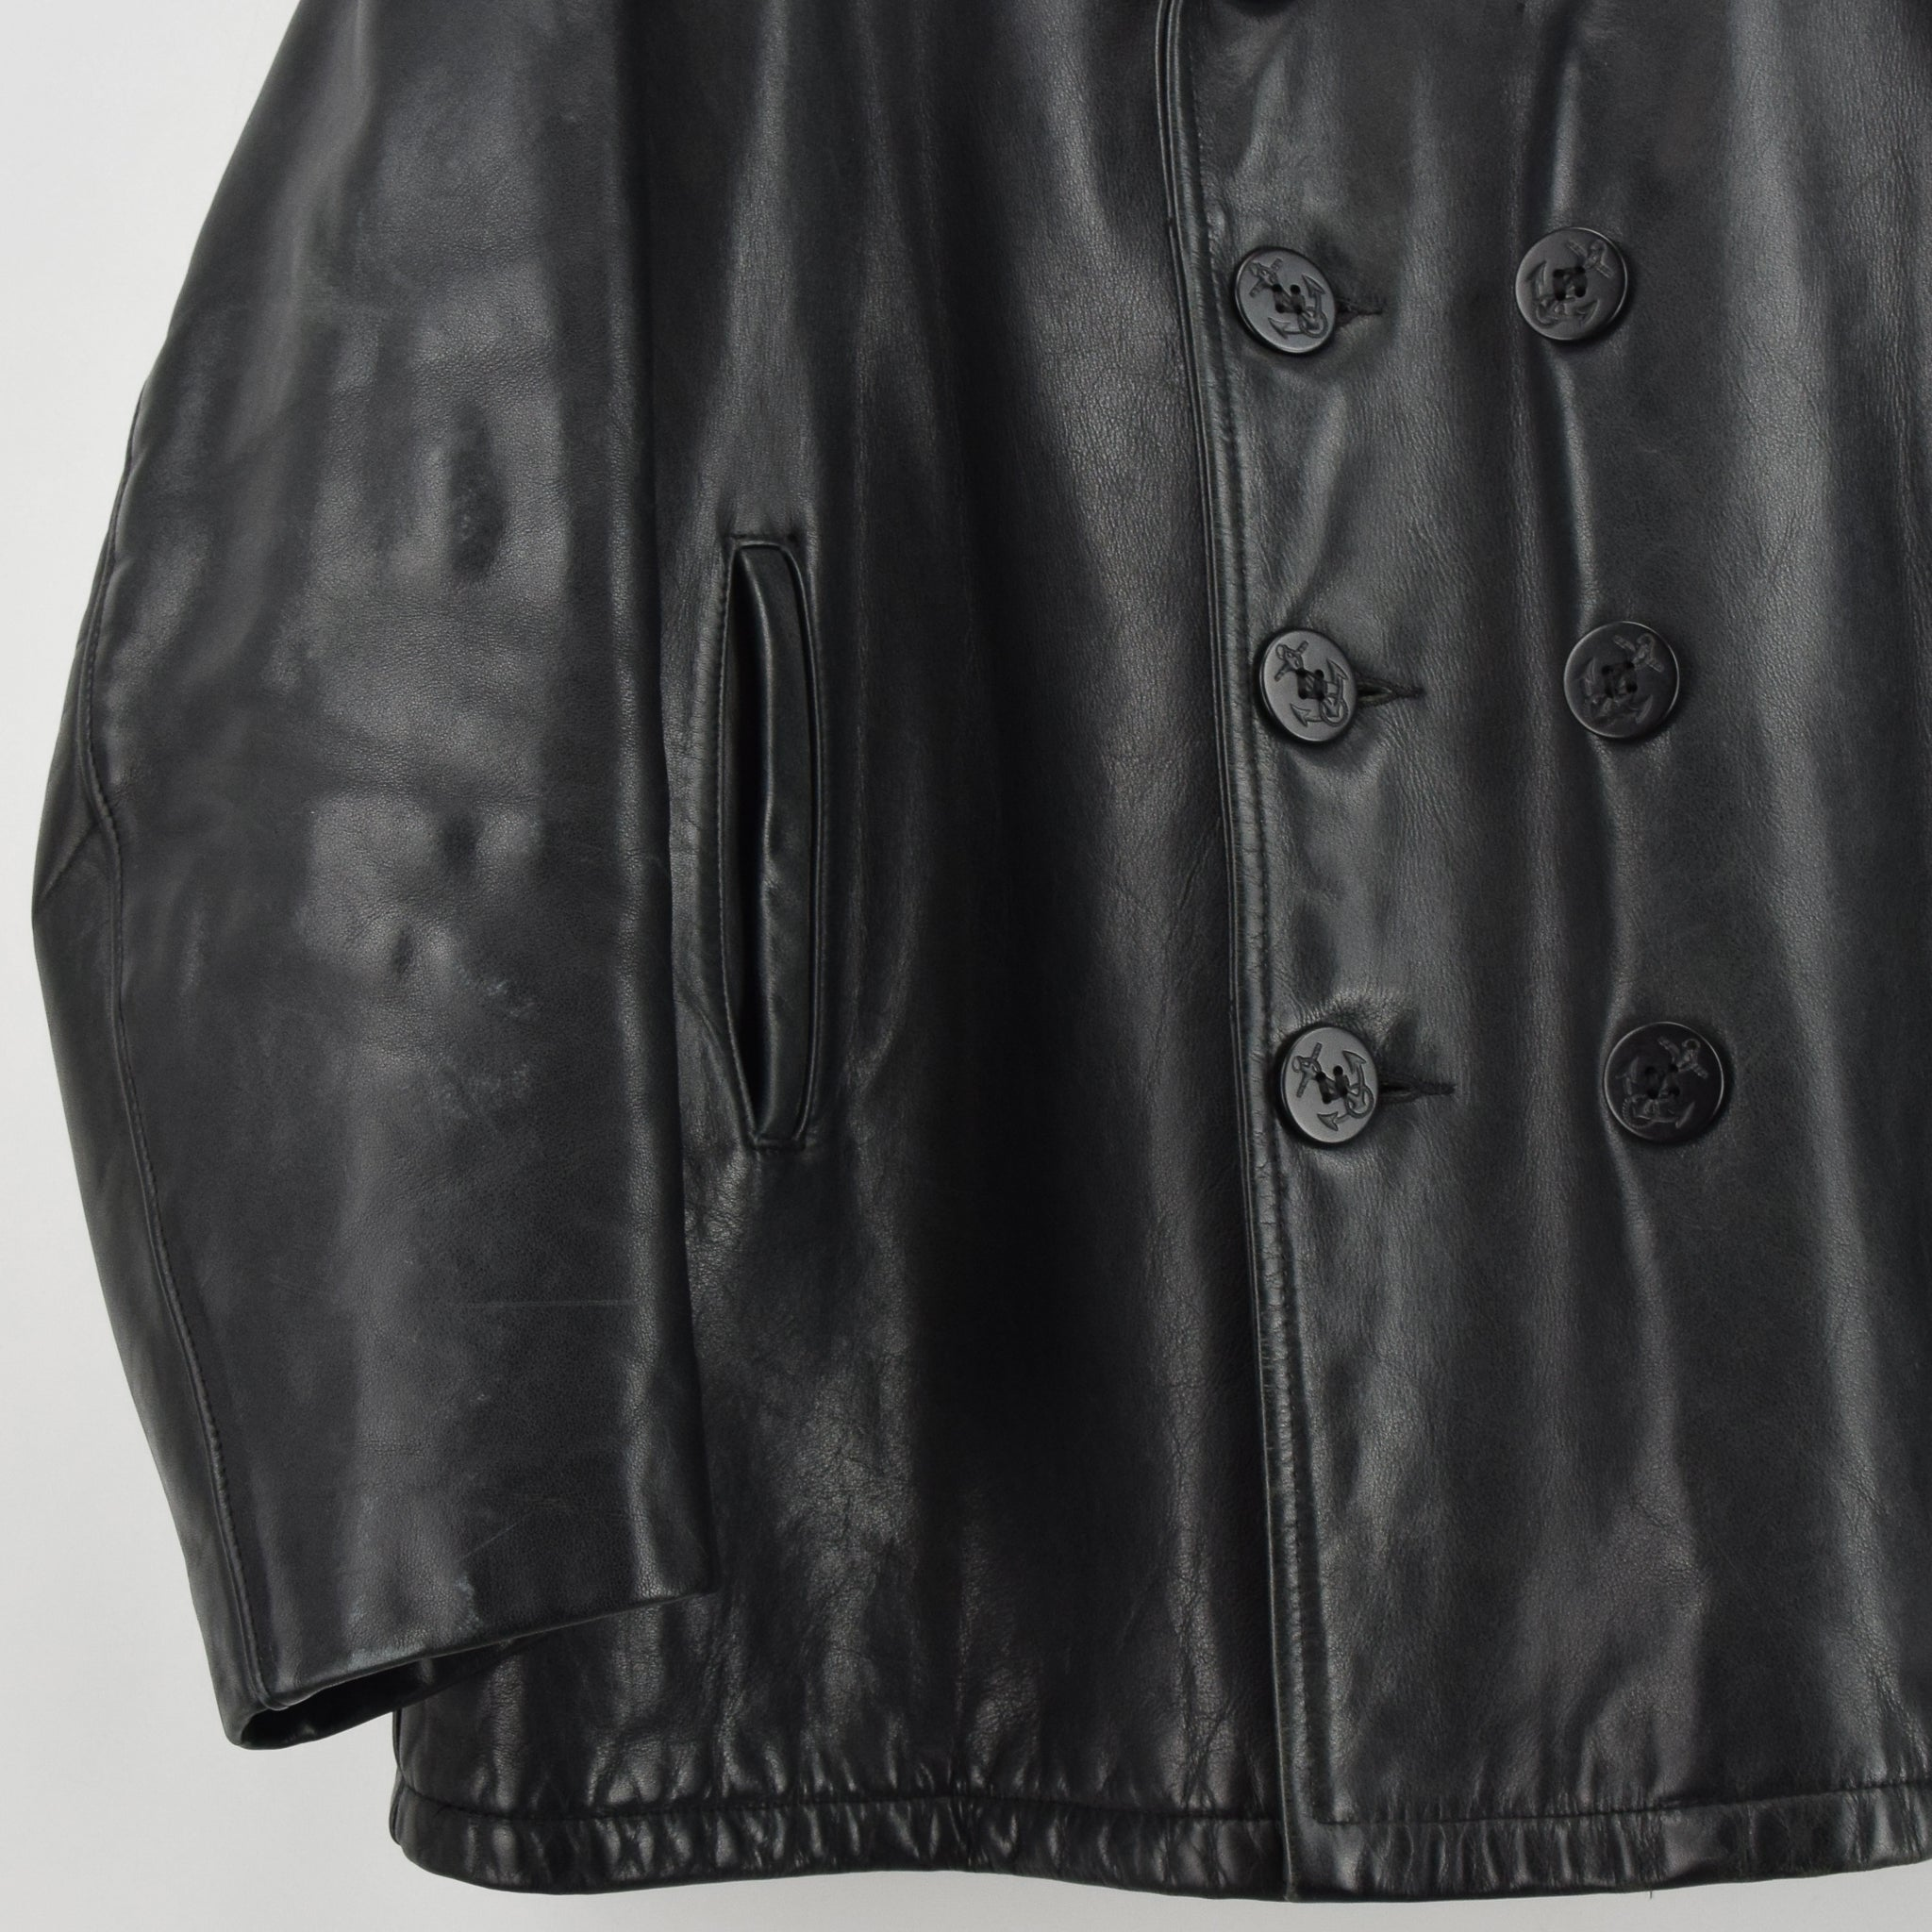 Vintage Schott NYC 740N Black Leather Pea Coat Reefer Jacket USA Made XXL / XXXL front hem